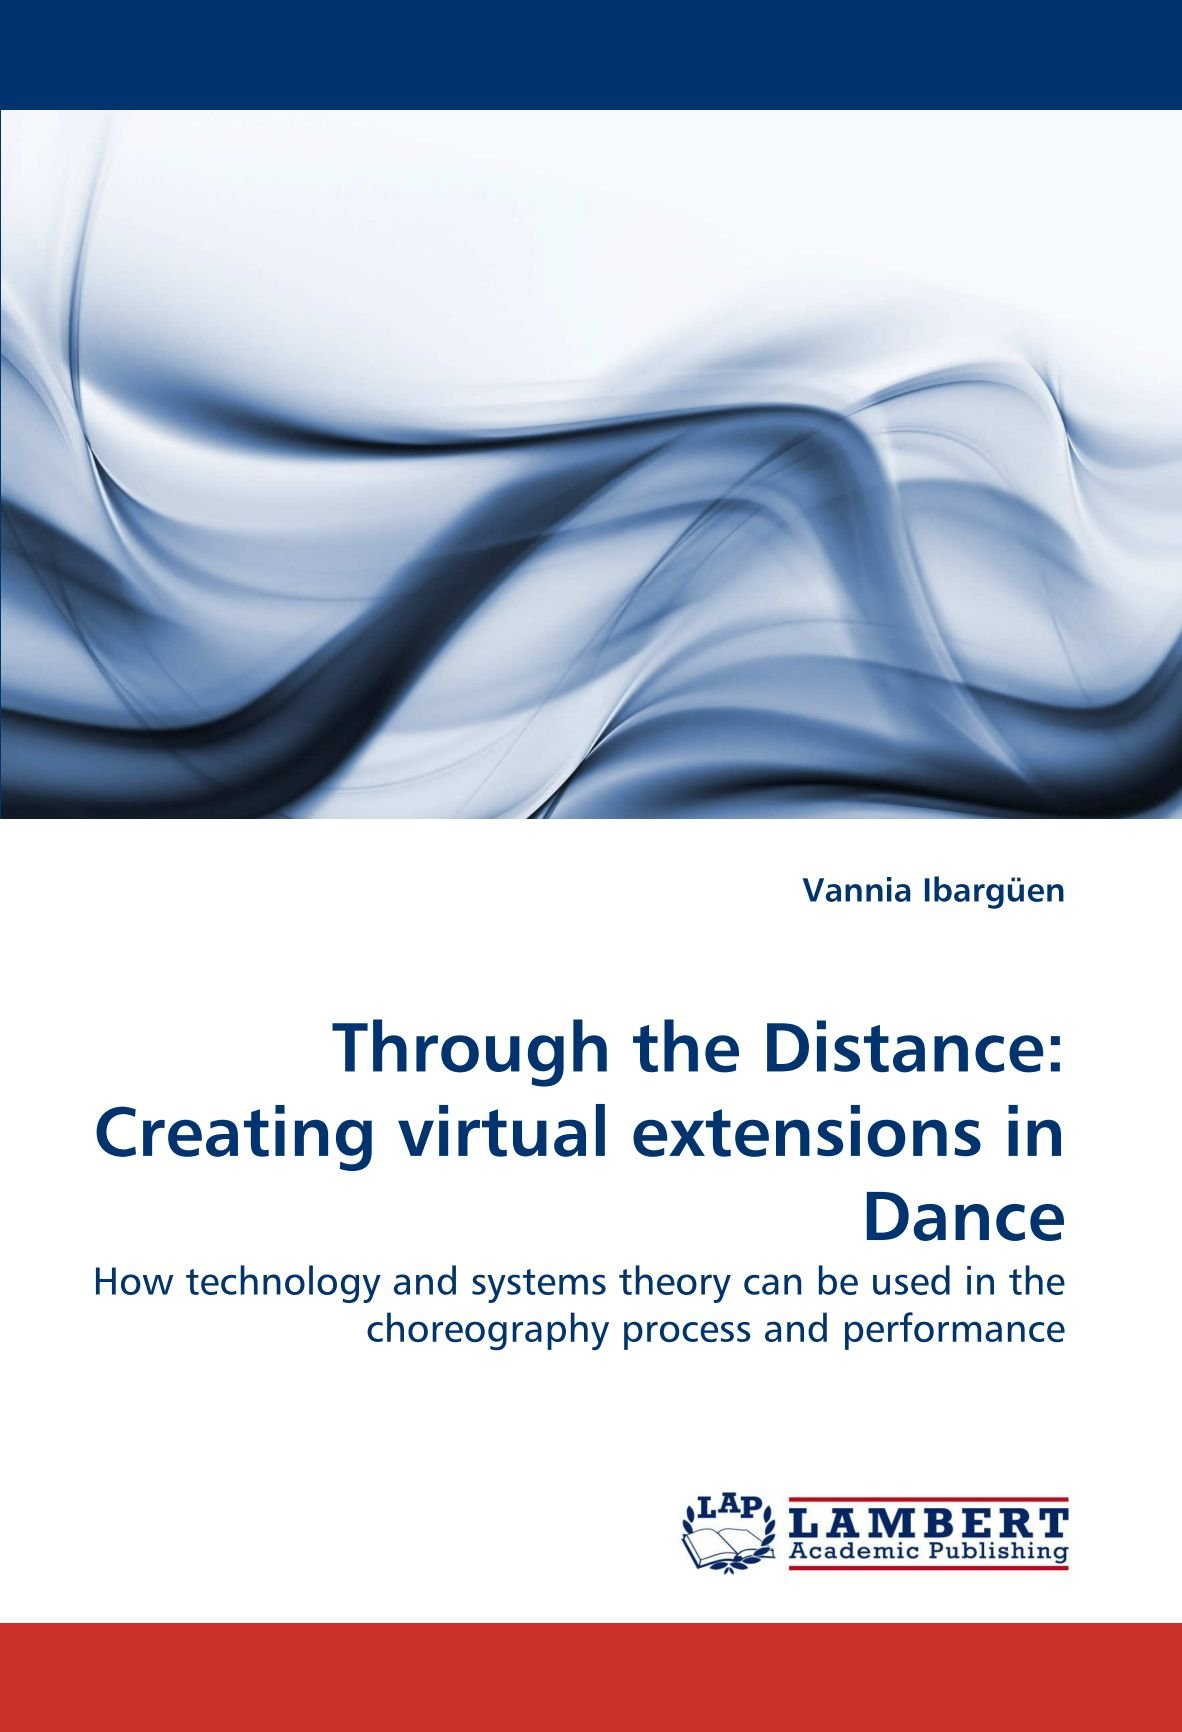 Through the Distance: Creating virtual extensions in Dance: How technology and systems theory can be used in the choreography process and performance